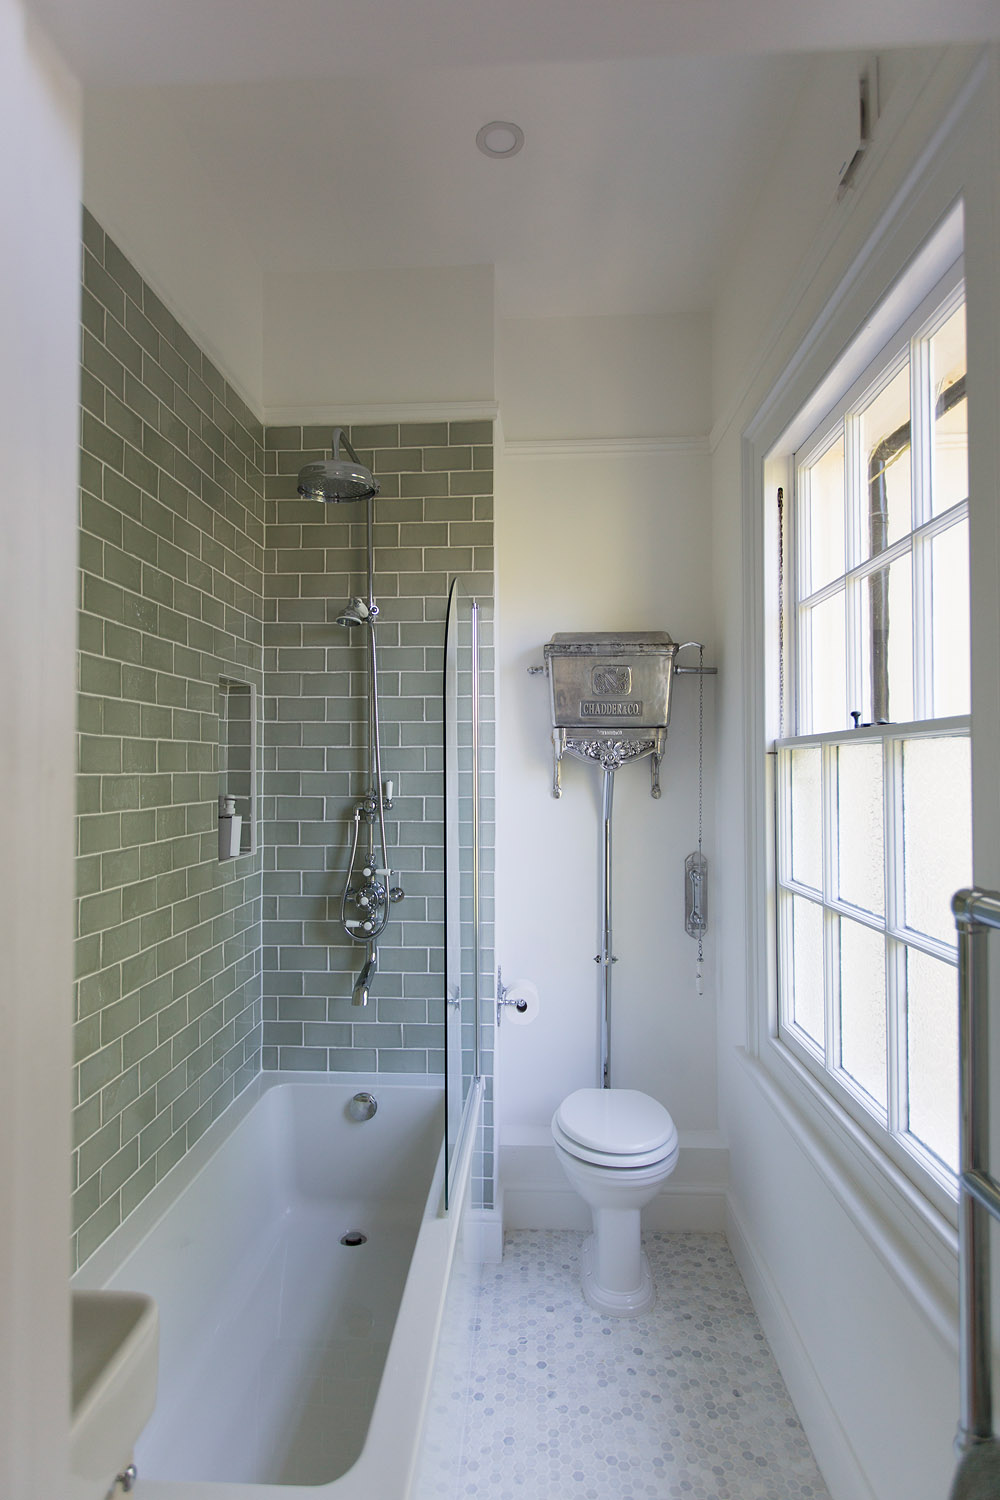 Original Ensuite becomes a third bathroom